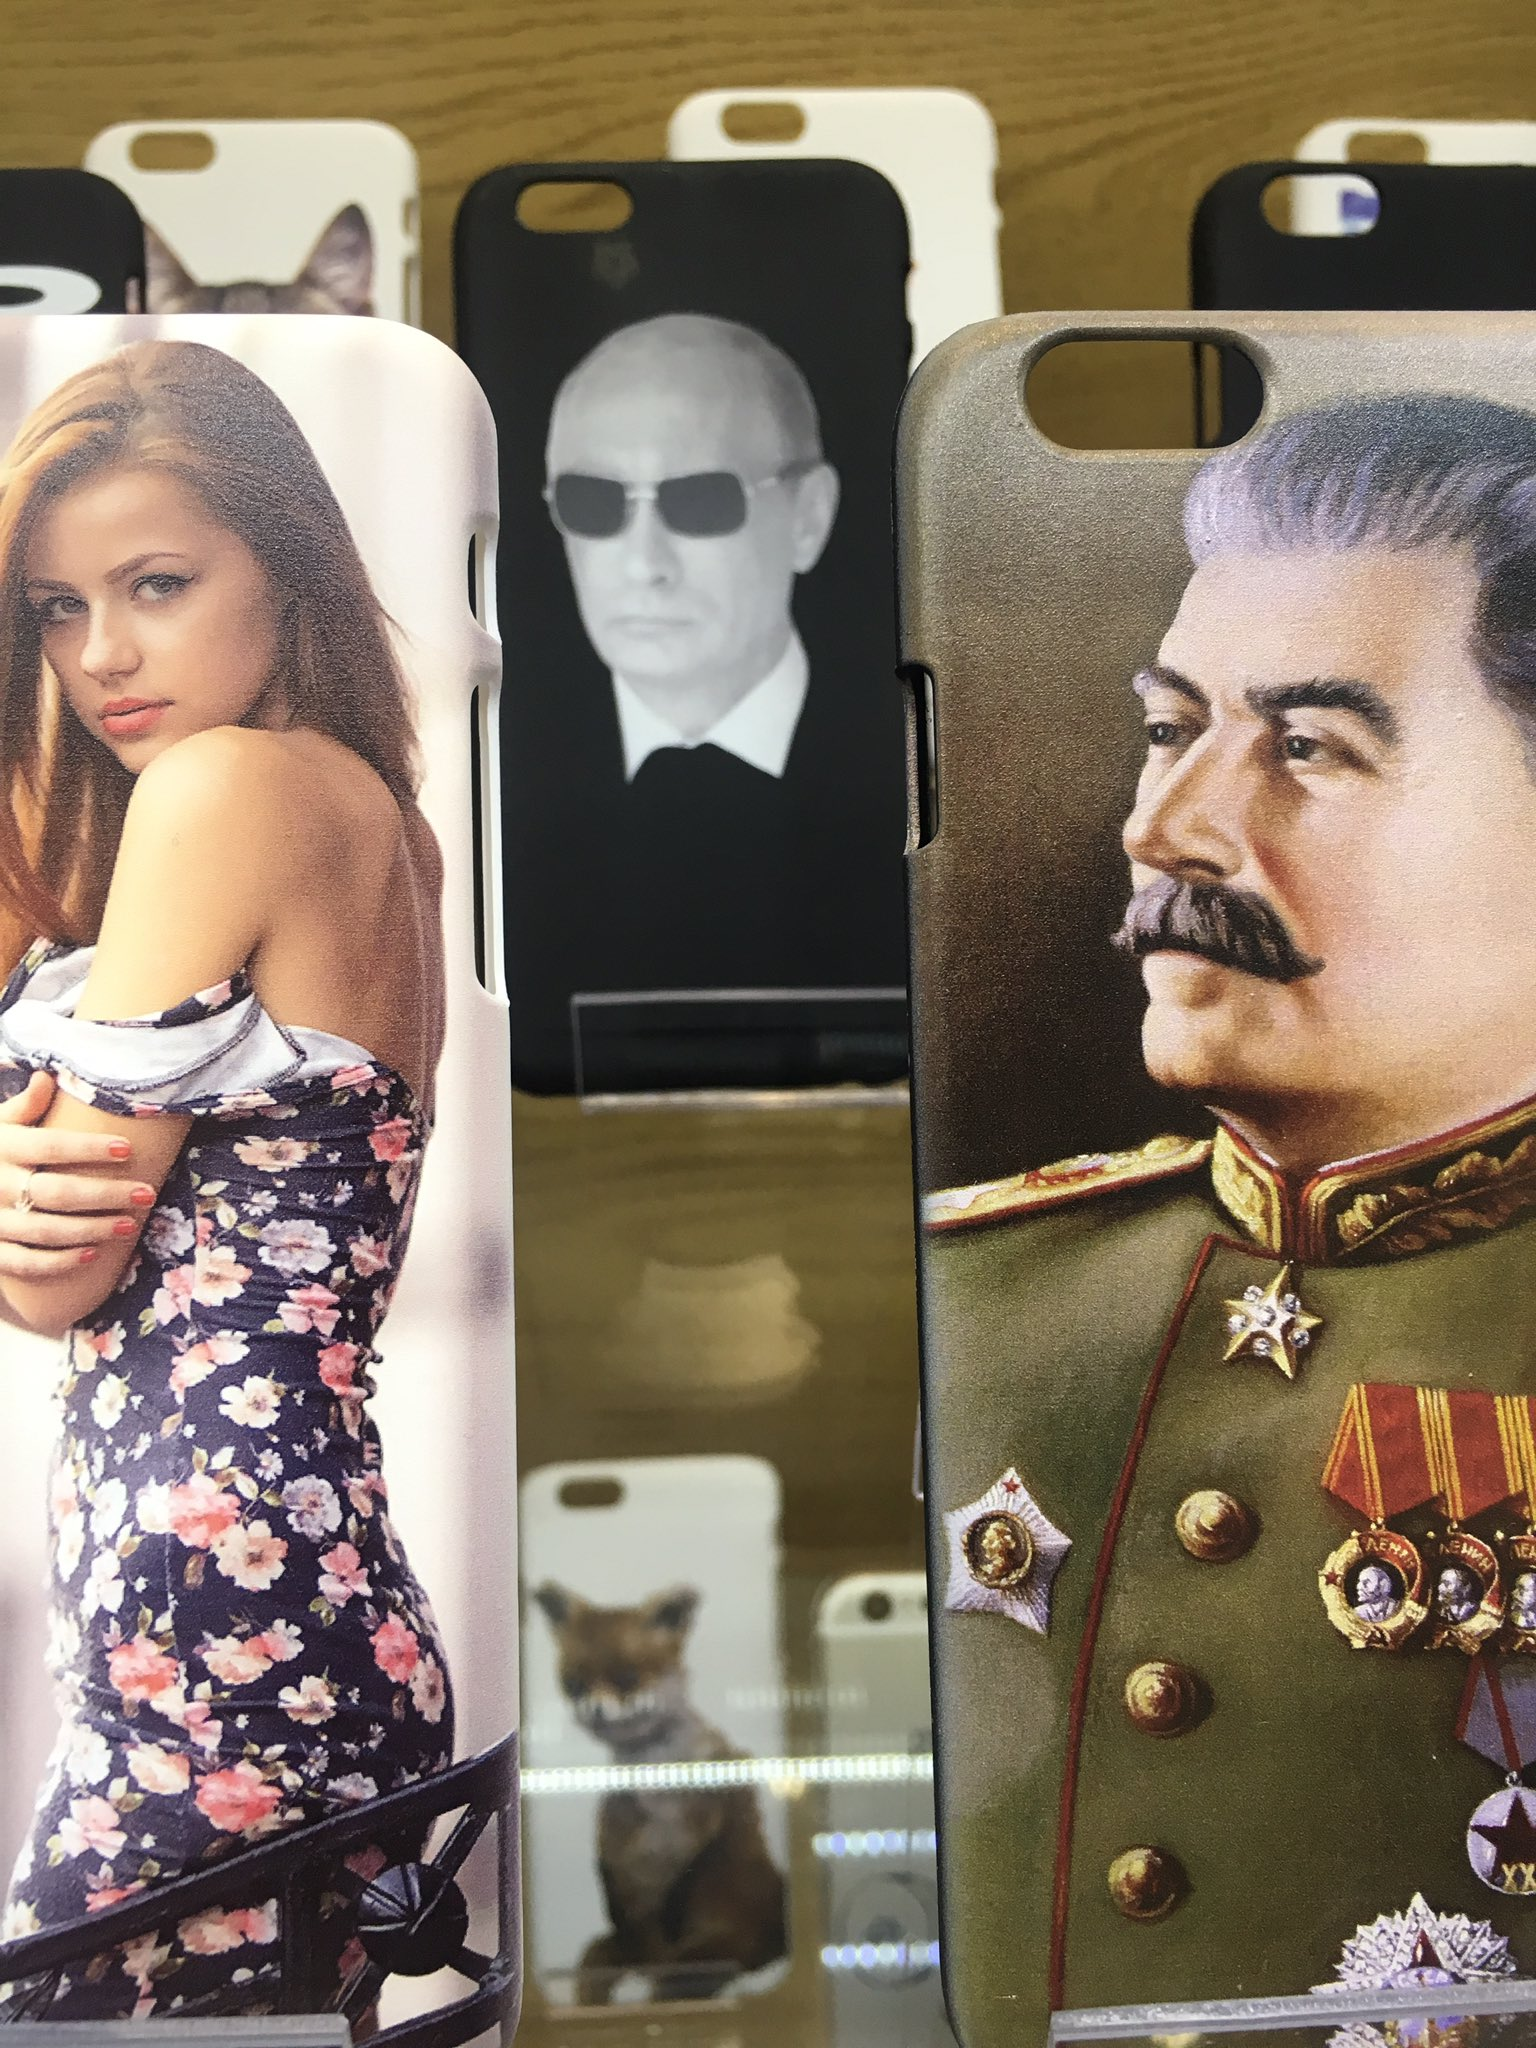 Smart phone covers on sale in Moscow. https://t.co/kCBfwk0uSR